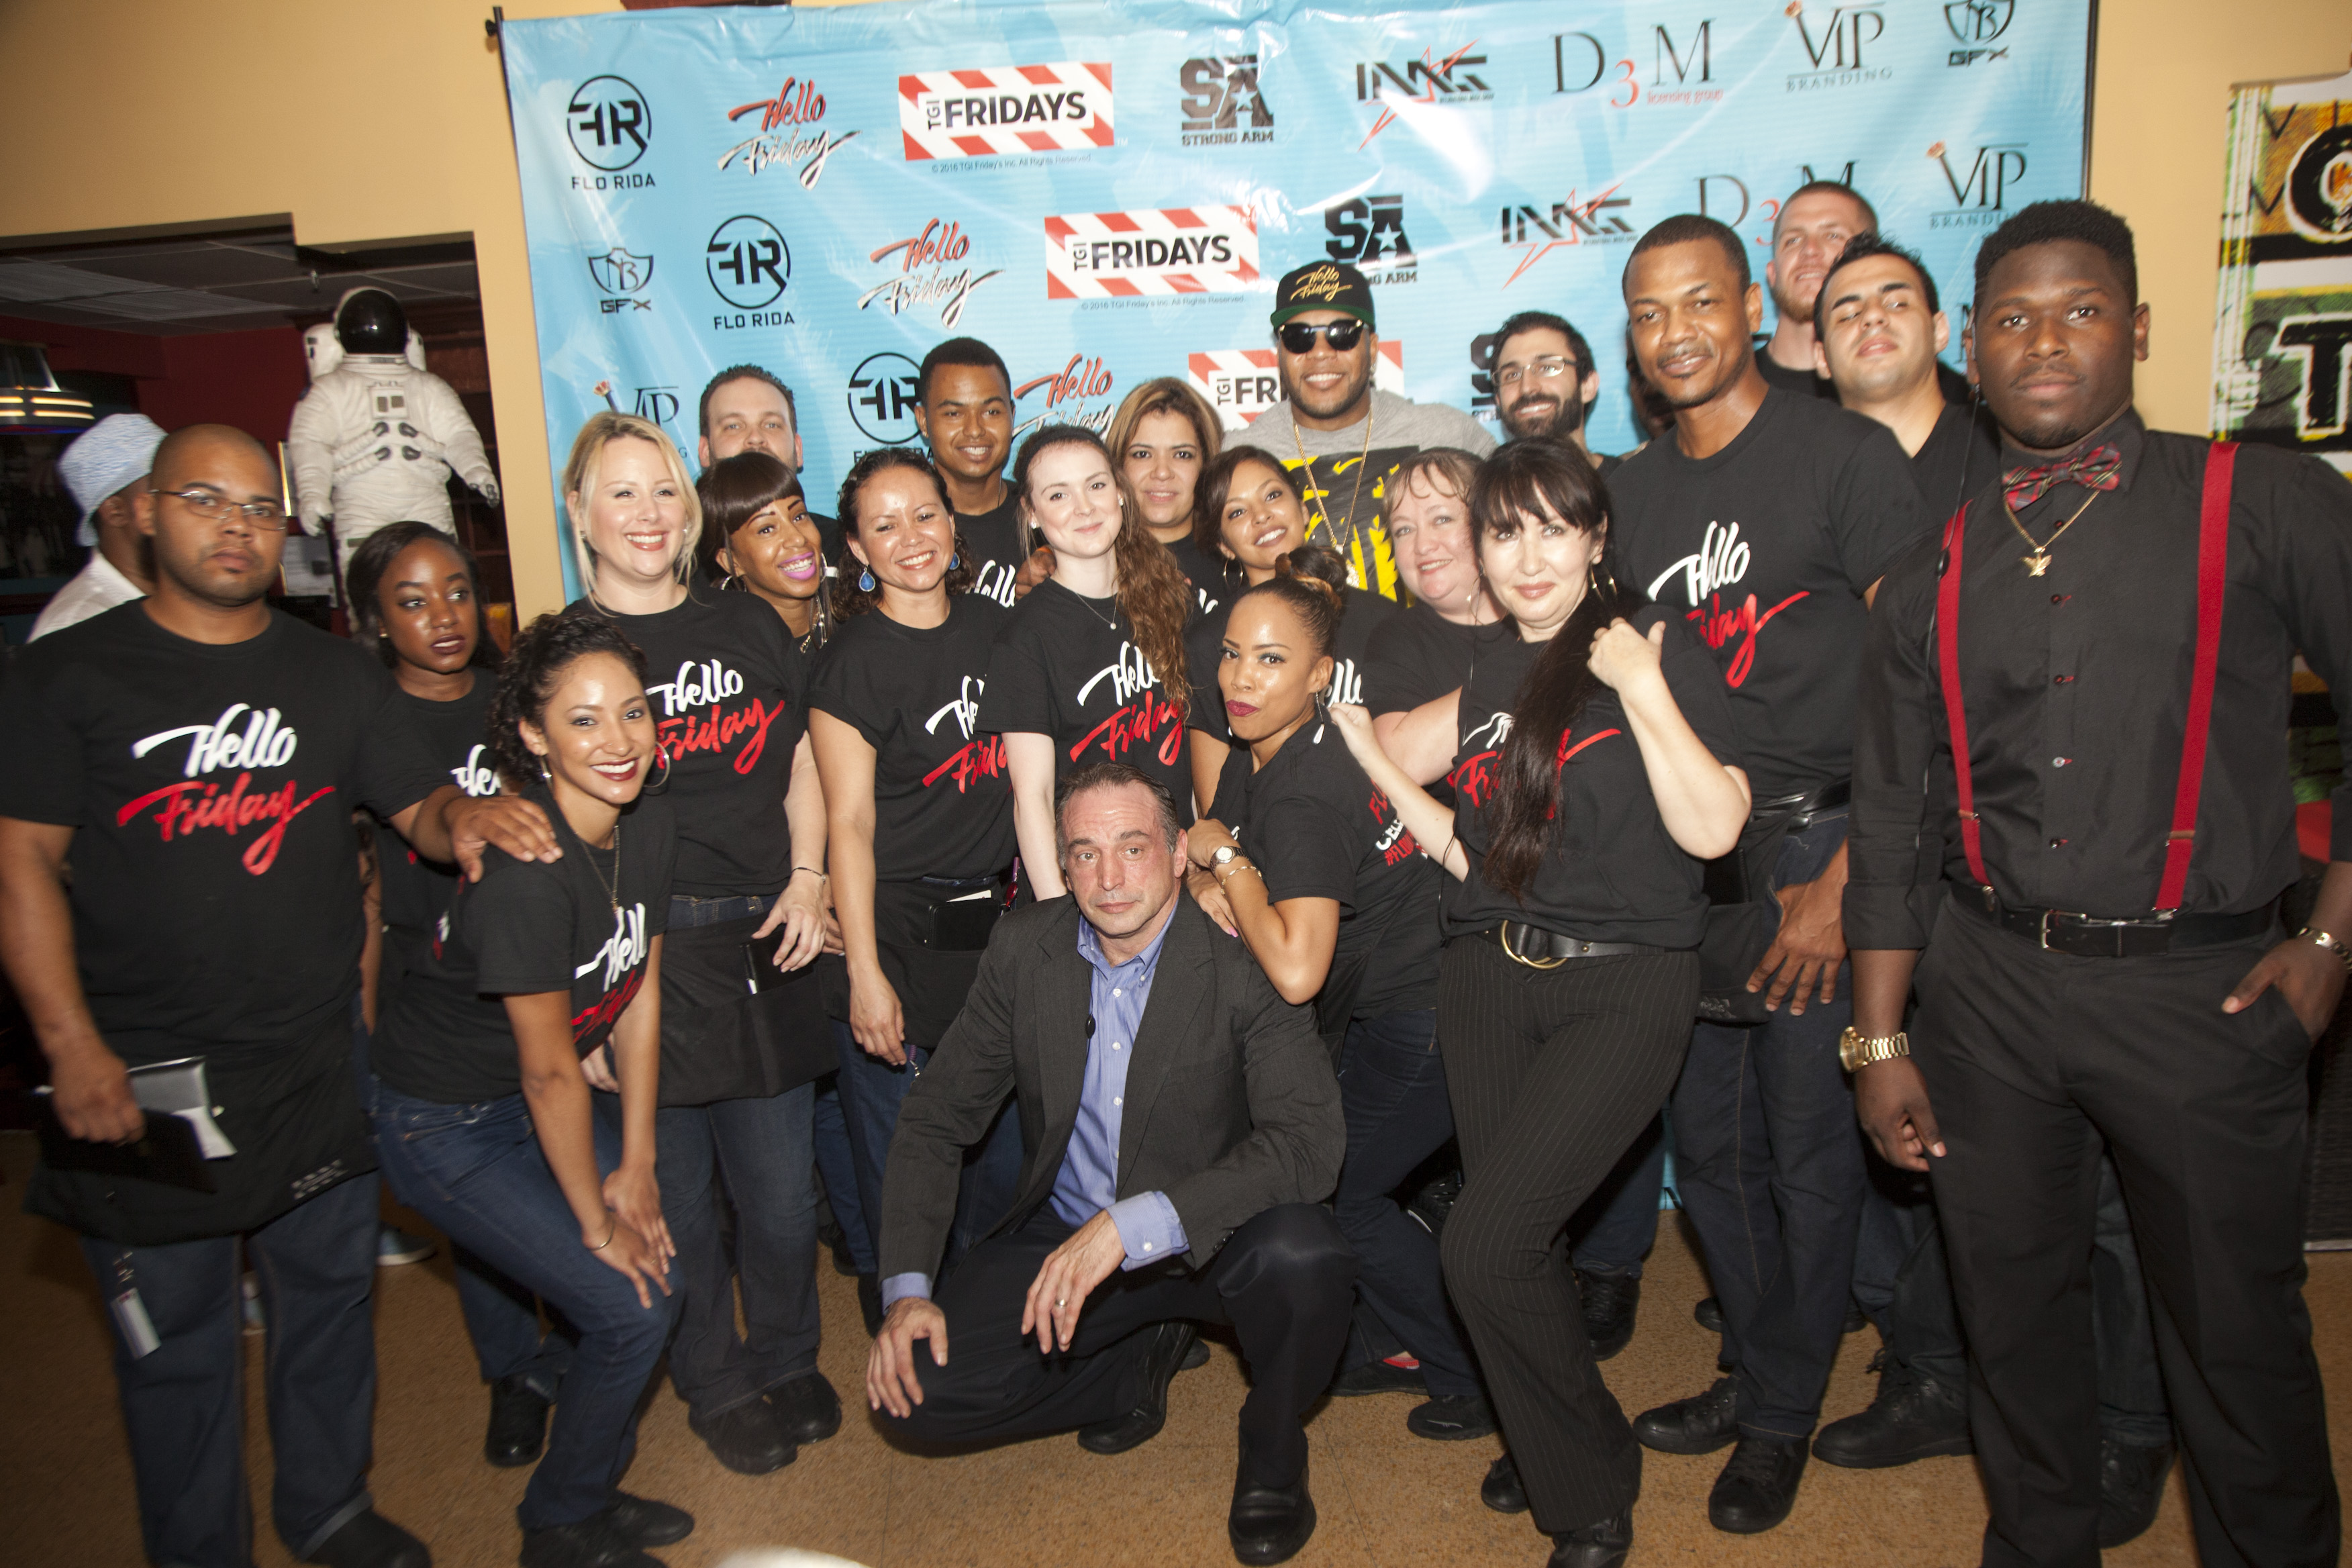 Flo Rida and the Amazing TGI Fridays Crew - Flo Rida Day in Miami Beach